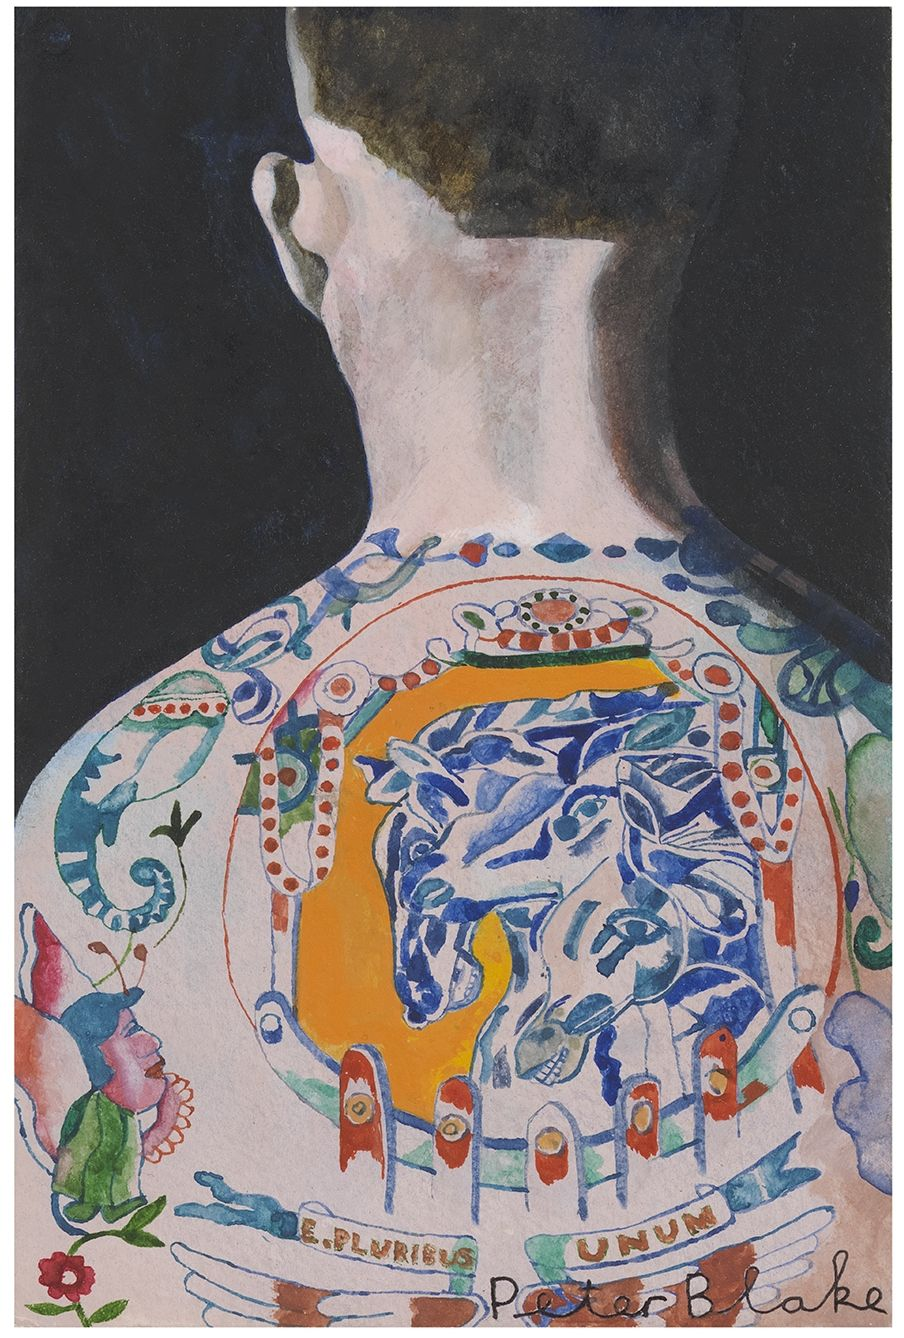 Man facing away from viewer with ornate, colorful upper back tattoo